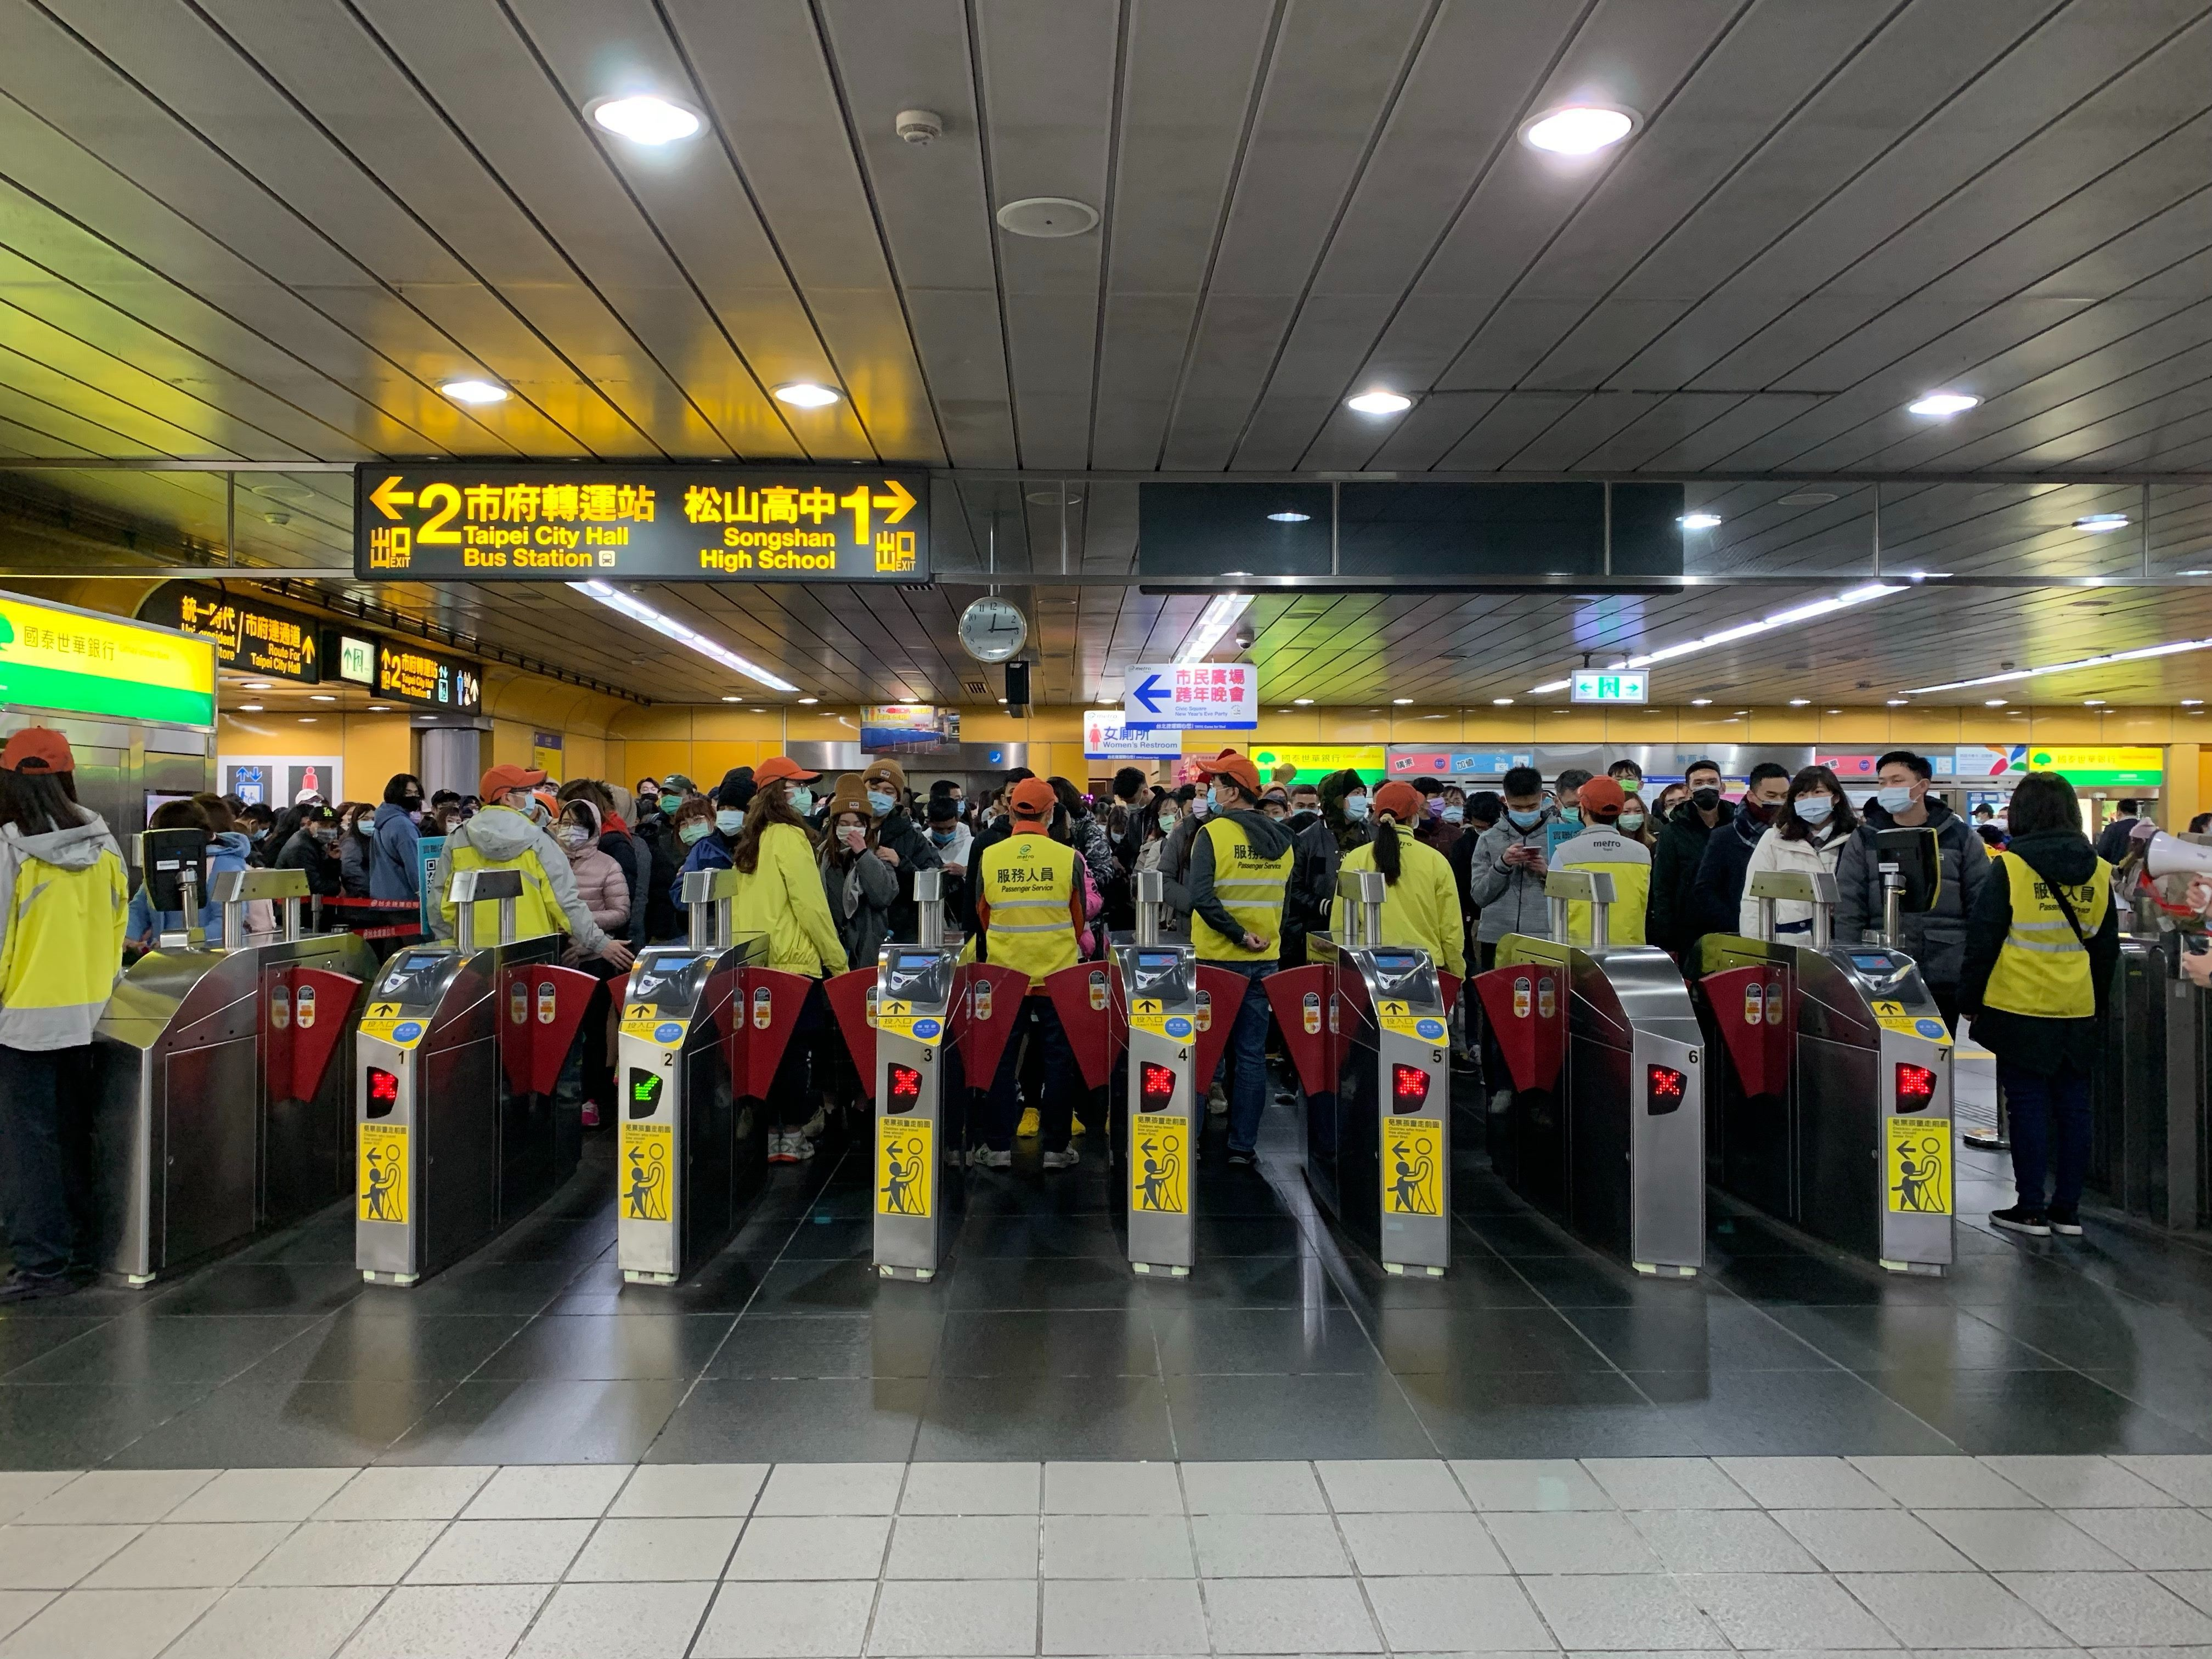 Passengers line up outside the gates at the MRT Station